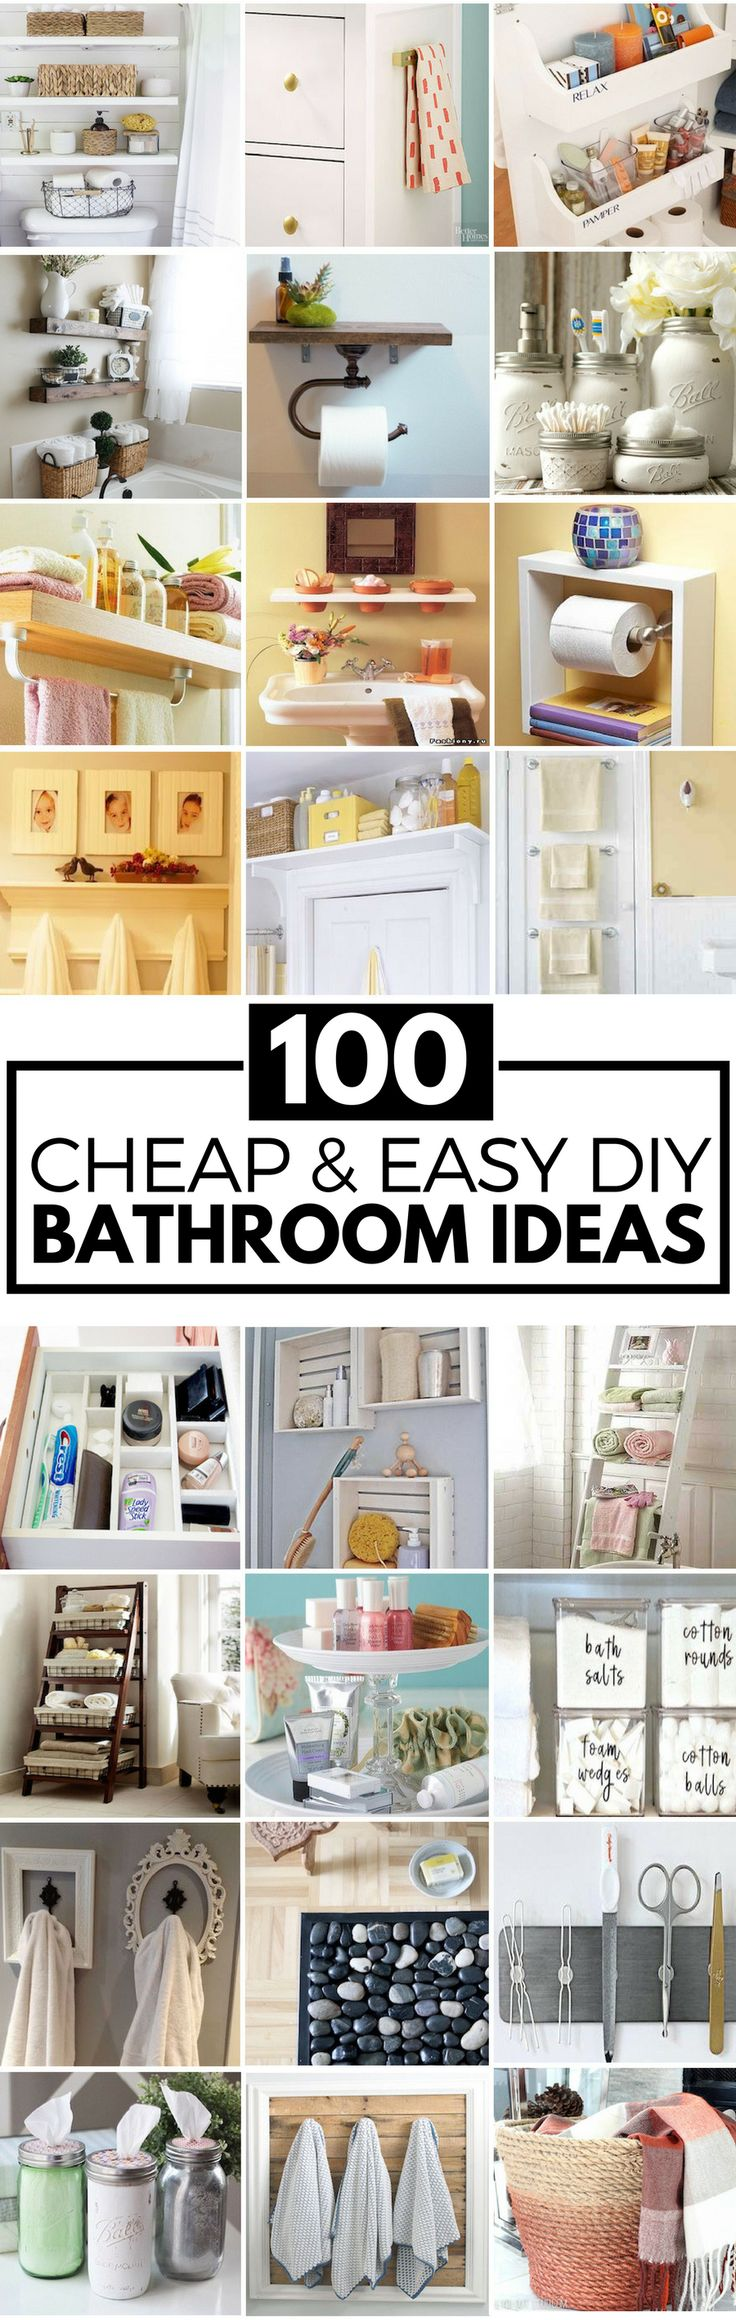 Cheap Diy Bathroom Remodel Ideas best 25+ diy bathroom remodel ideas on pinterest | rust update